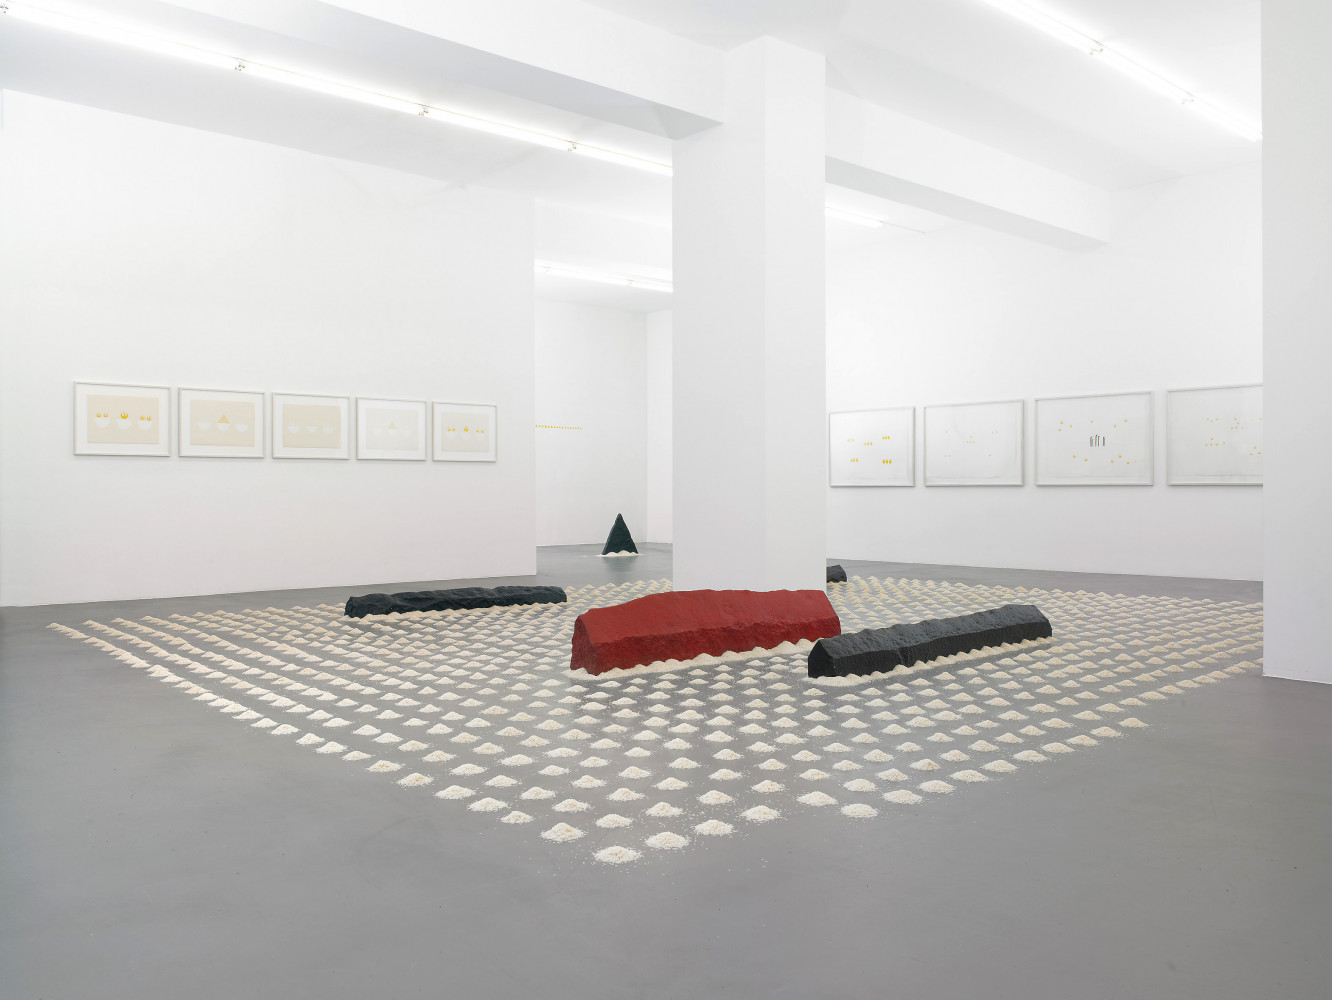 'Wolfgang Laib', Installation view, Buchmann Galerie, 2011